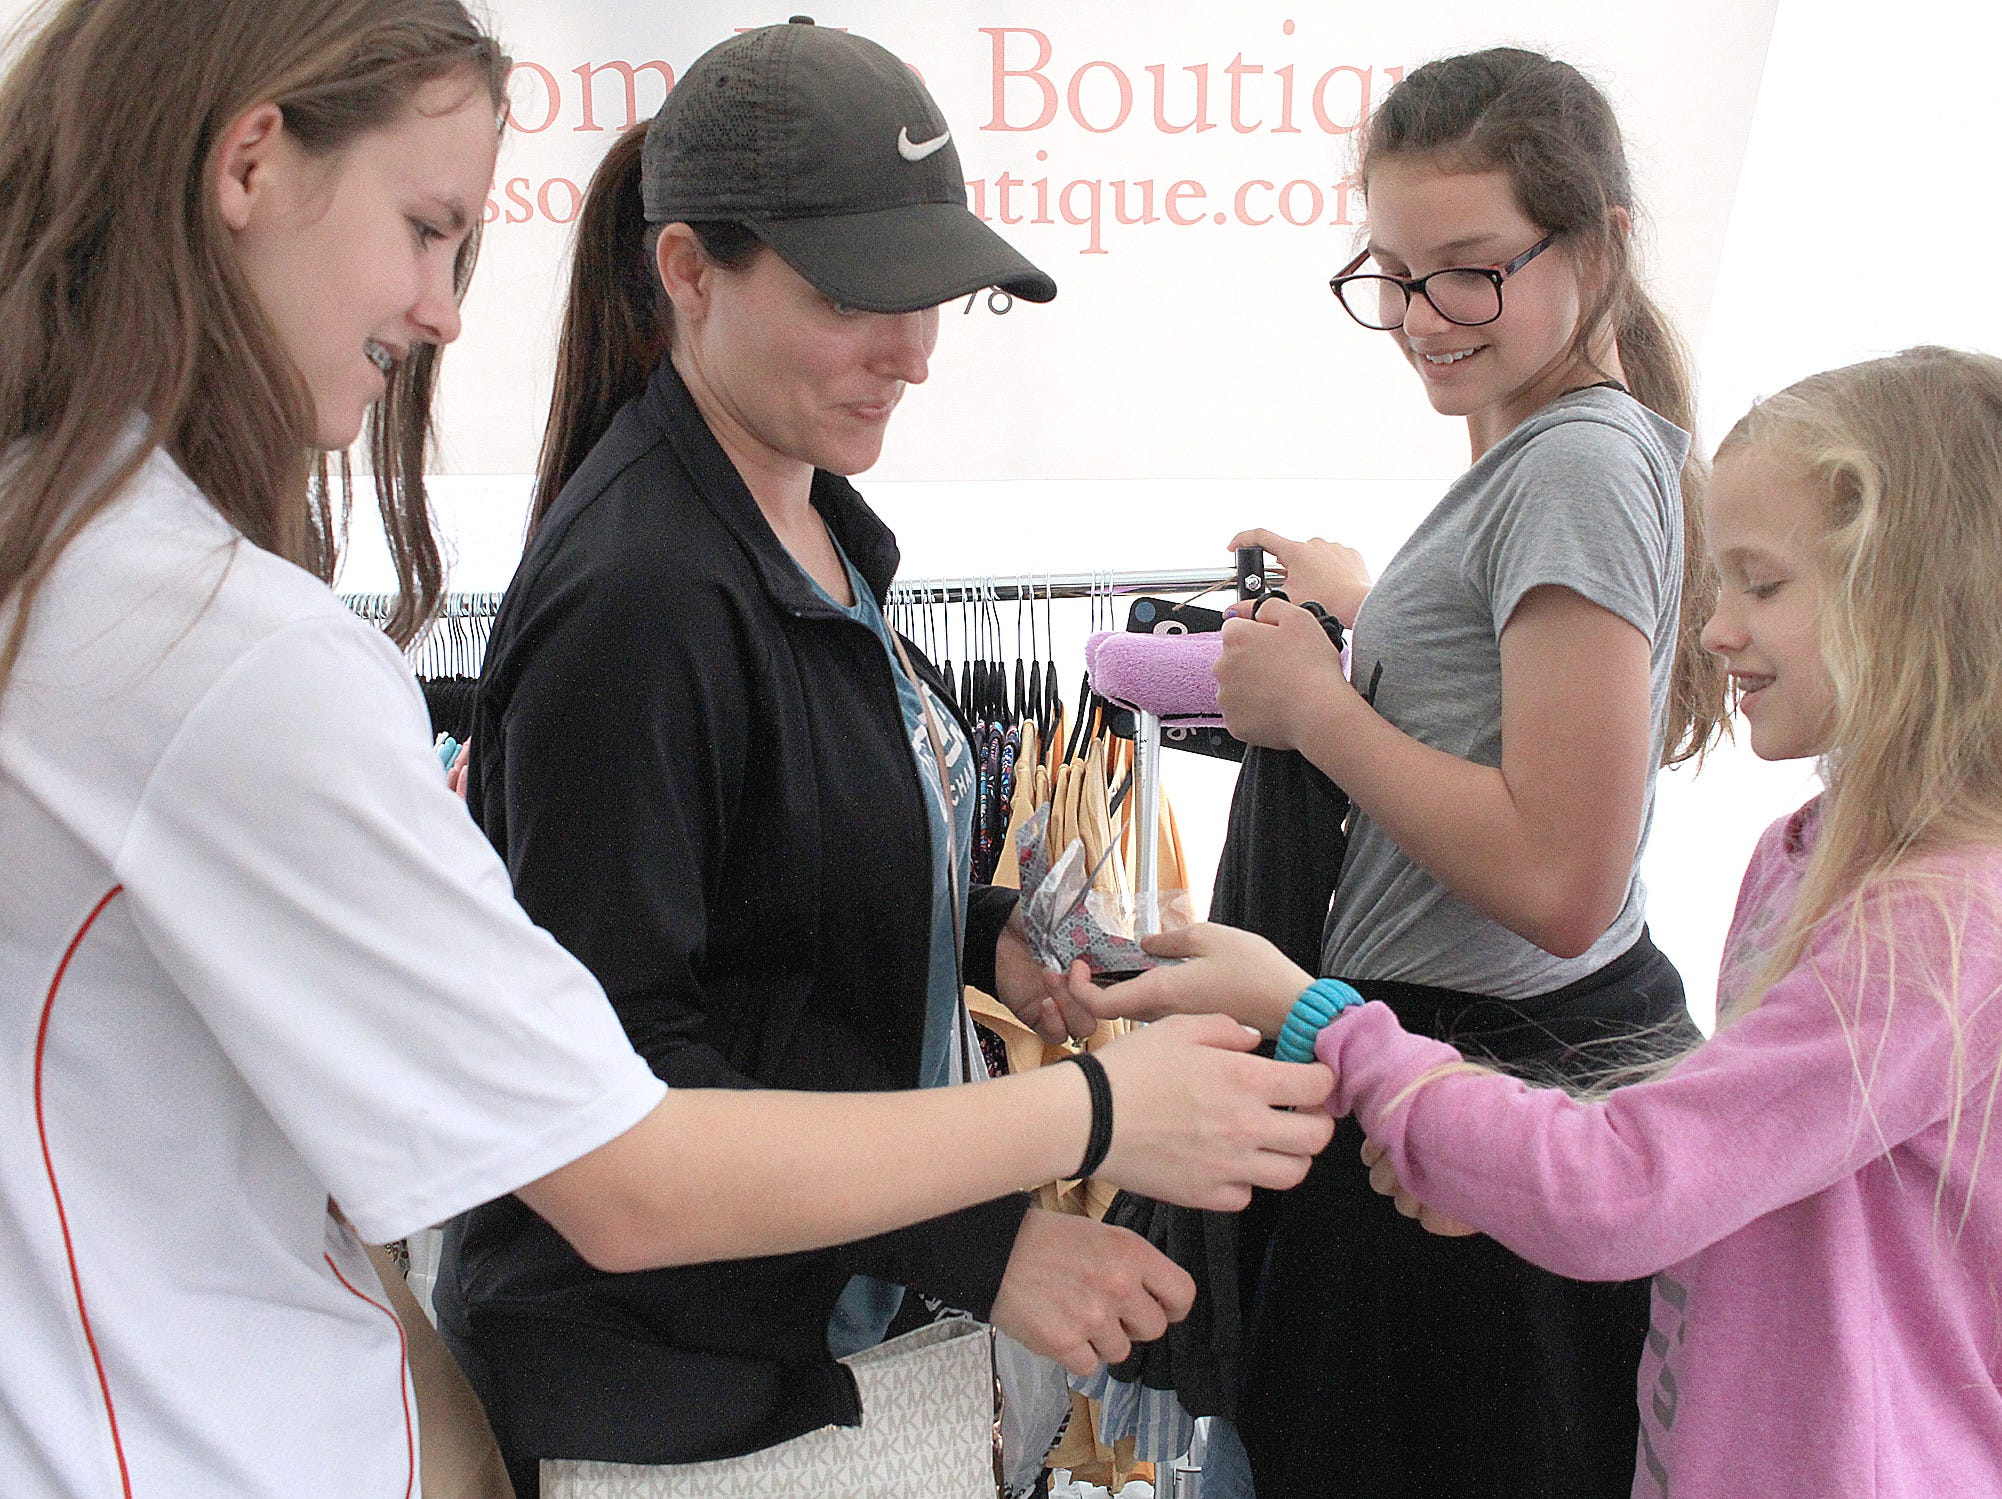 l-R Mackenzie, Tiffany and Maddi Likness check out the bracelet Malorie picks out at the Fashion Crawl in Gallatin, TN on Saturday, May 11, 2019.